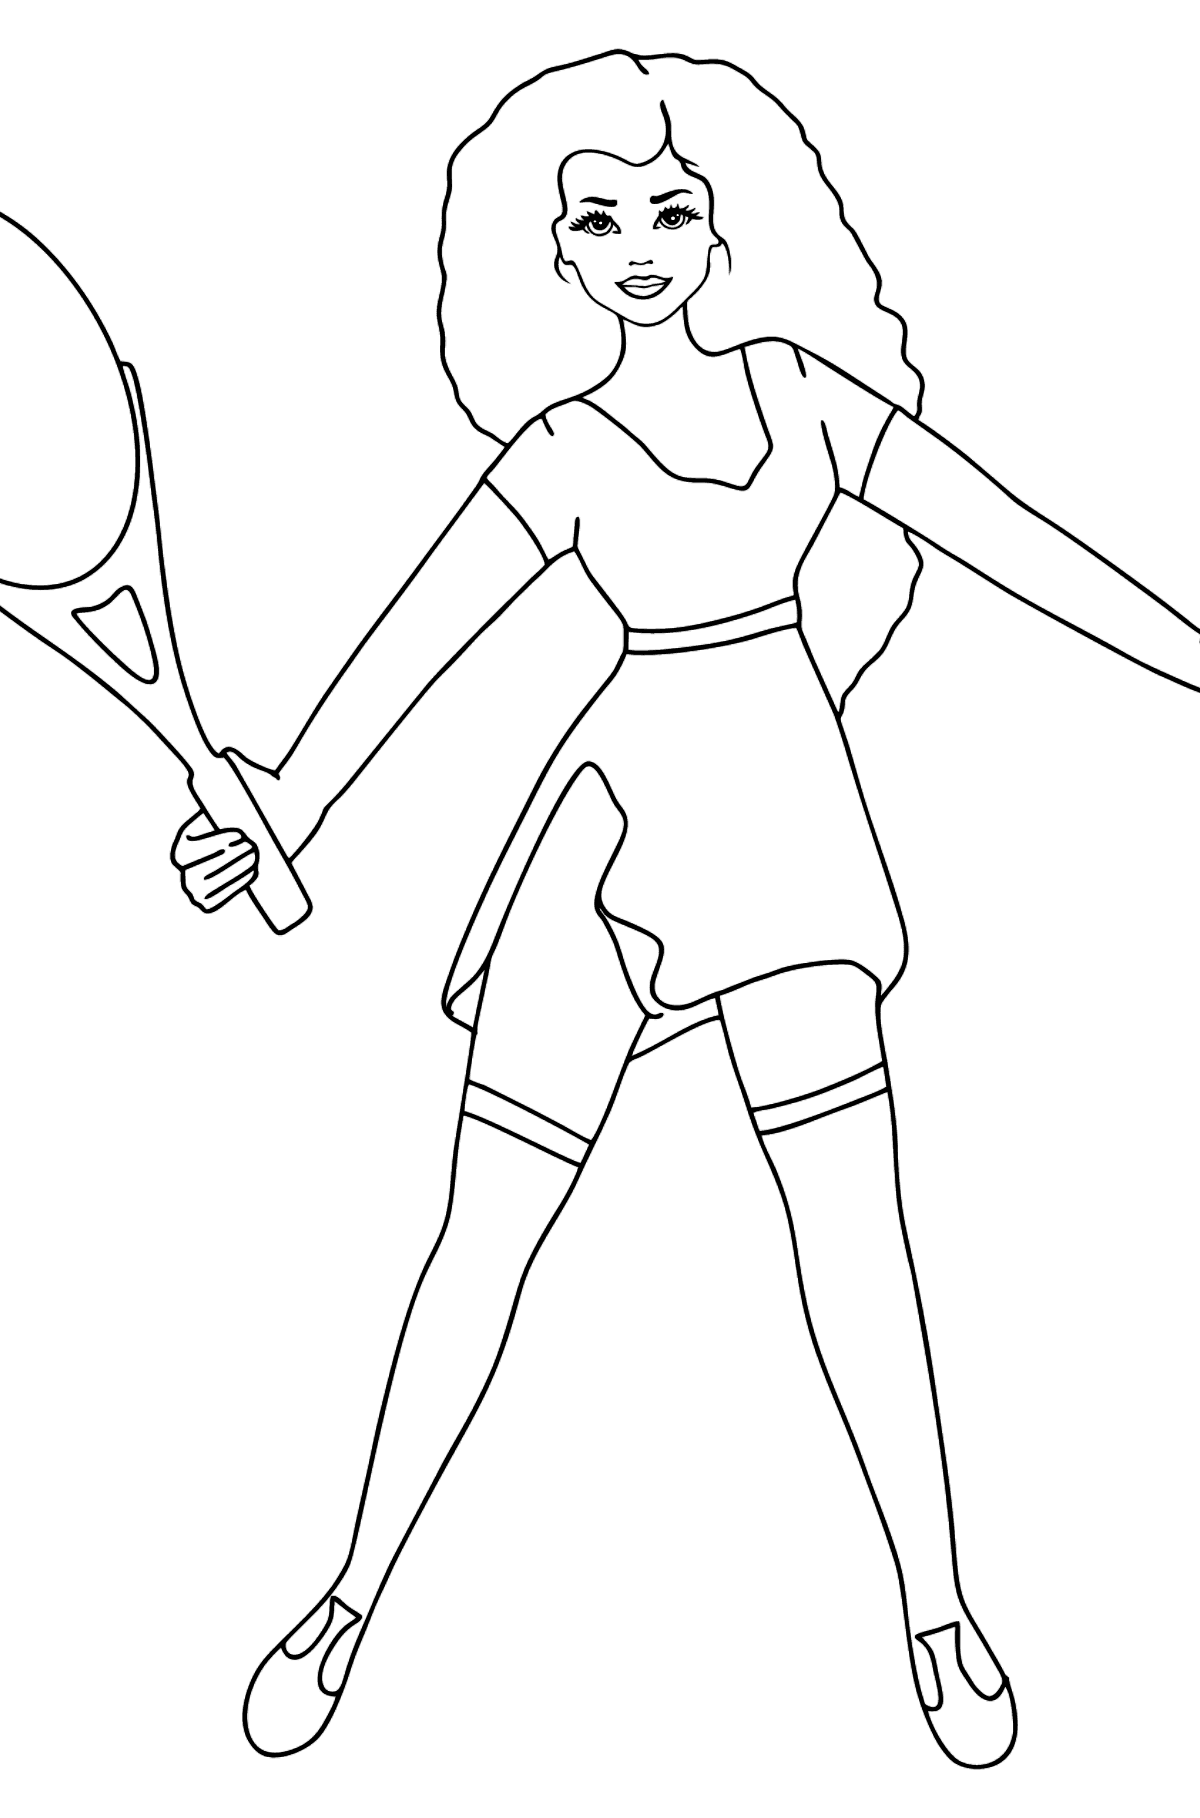 Barbie Doll Playing Tennis coloring page - Coloring Pages for Kids